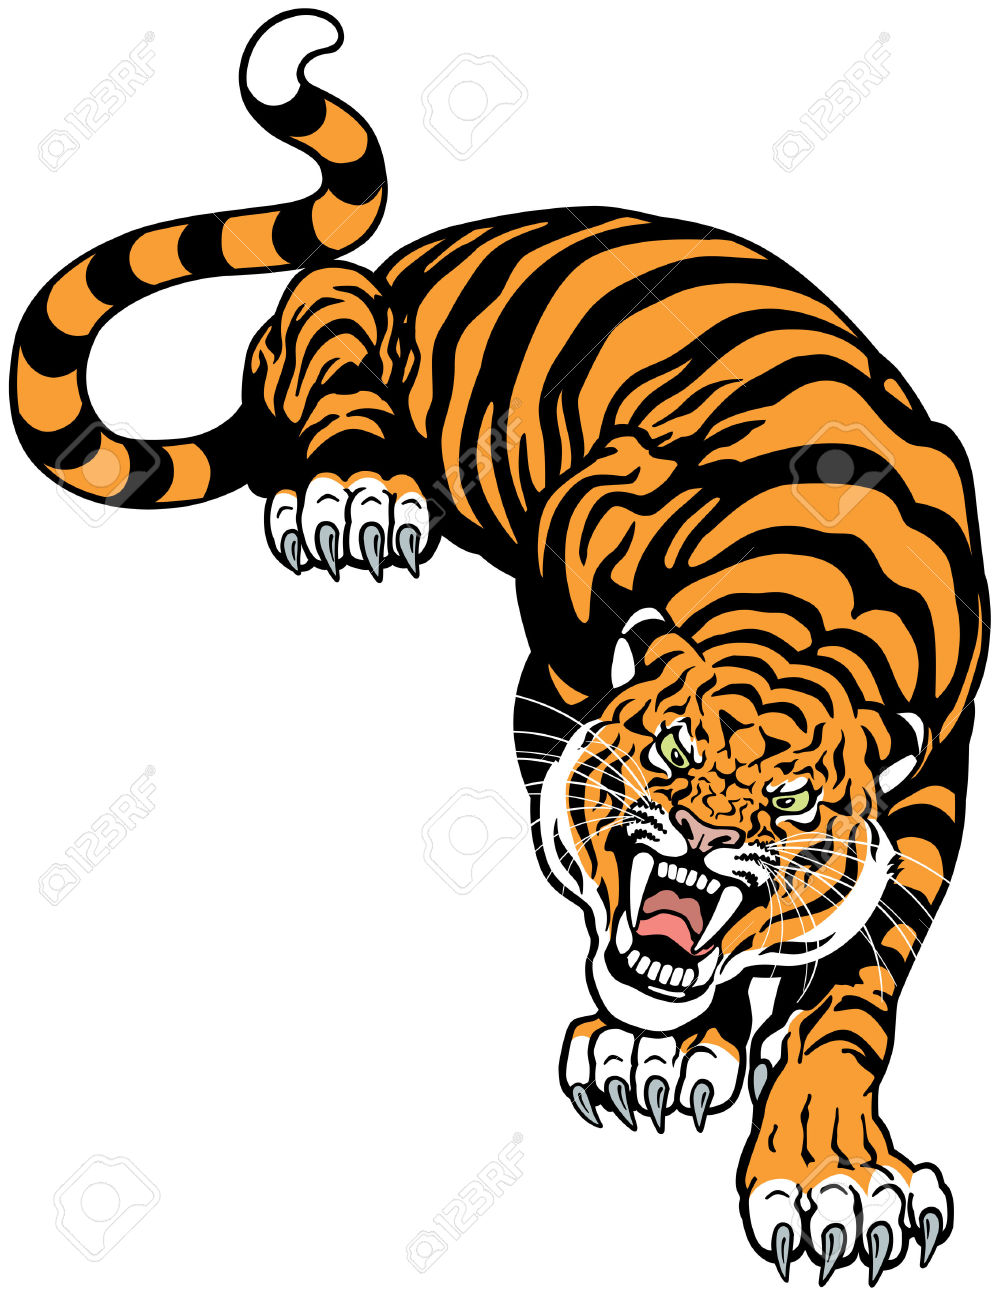 1,130 Roaring Tiger Stock Vector Illustration And Royalty Free.